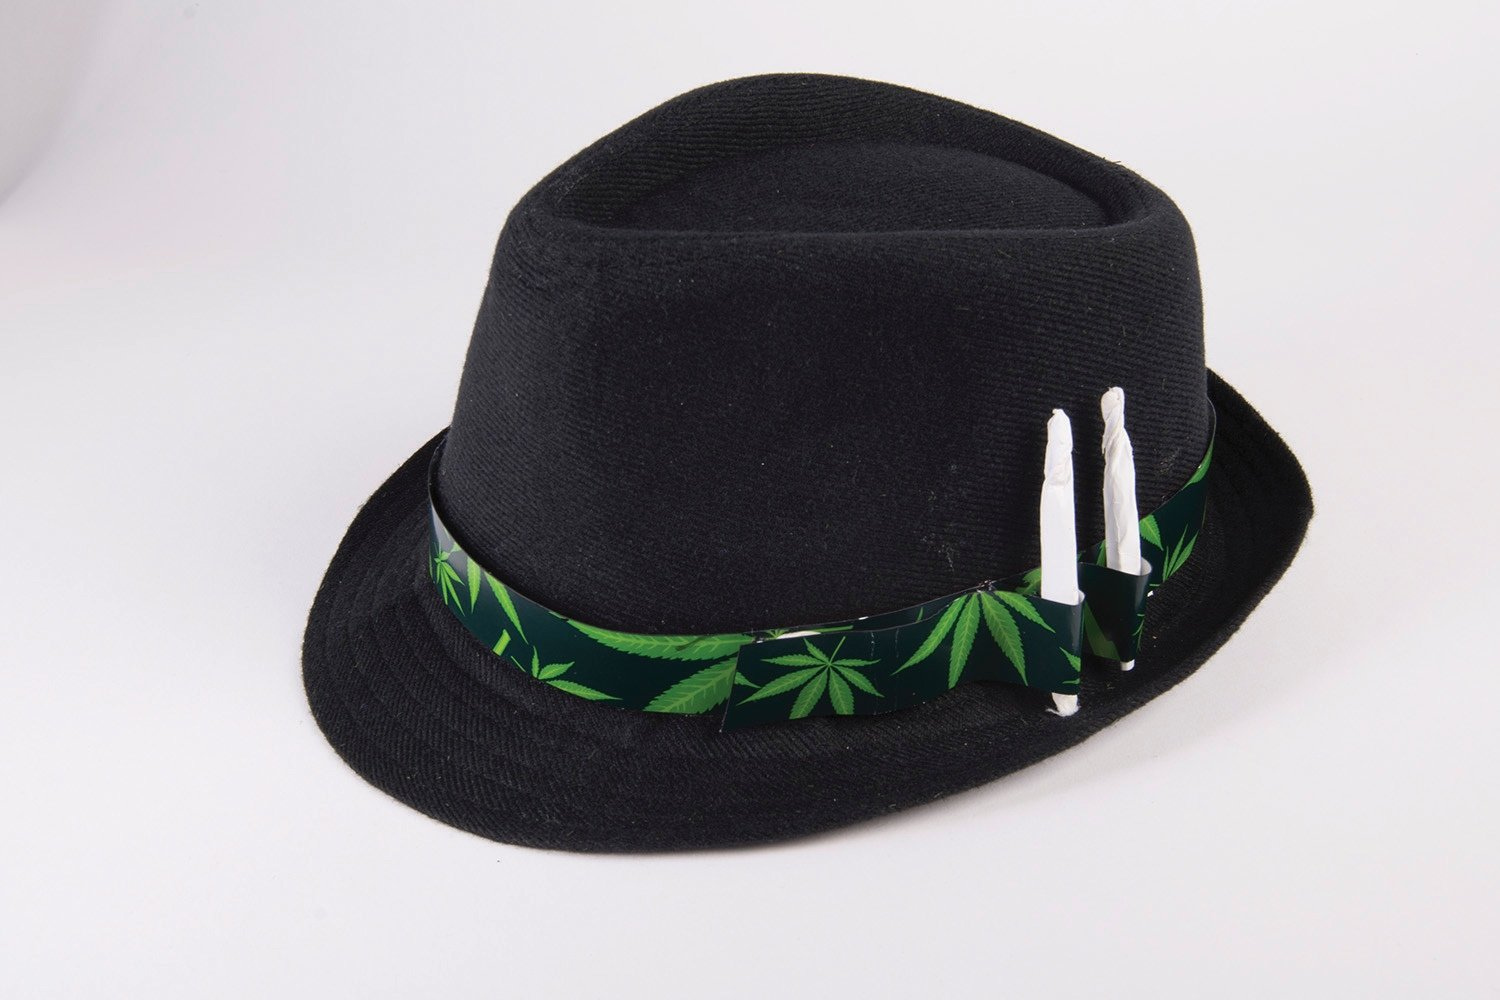 Forum Novelties Funny Fedora Hat Novelty Item